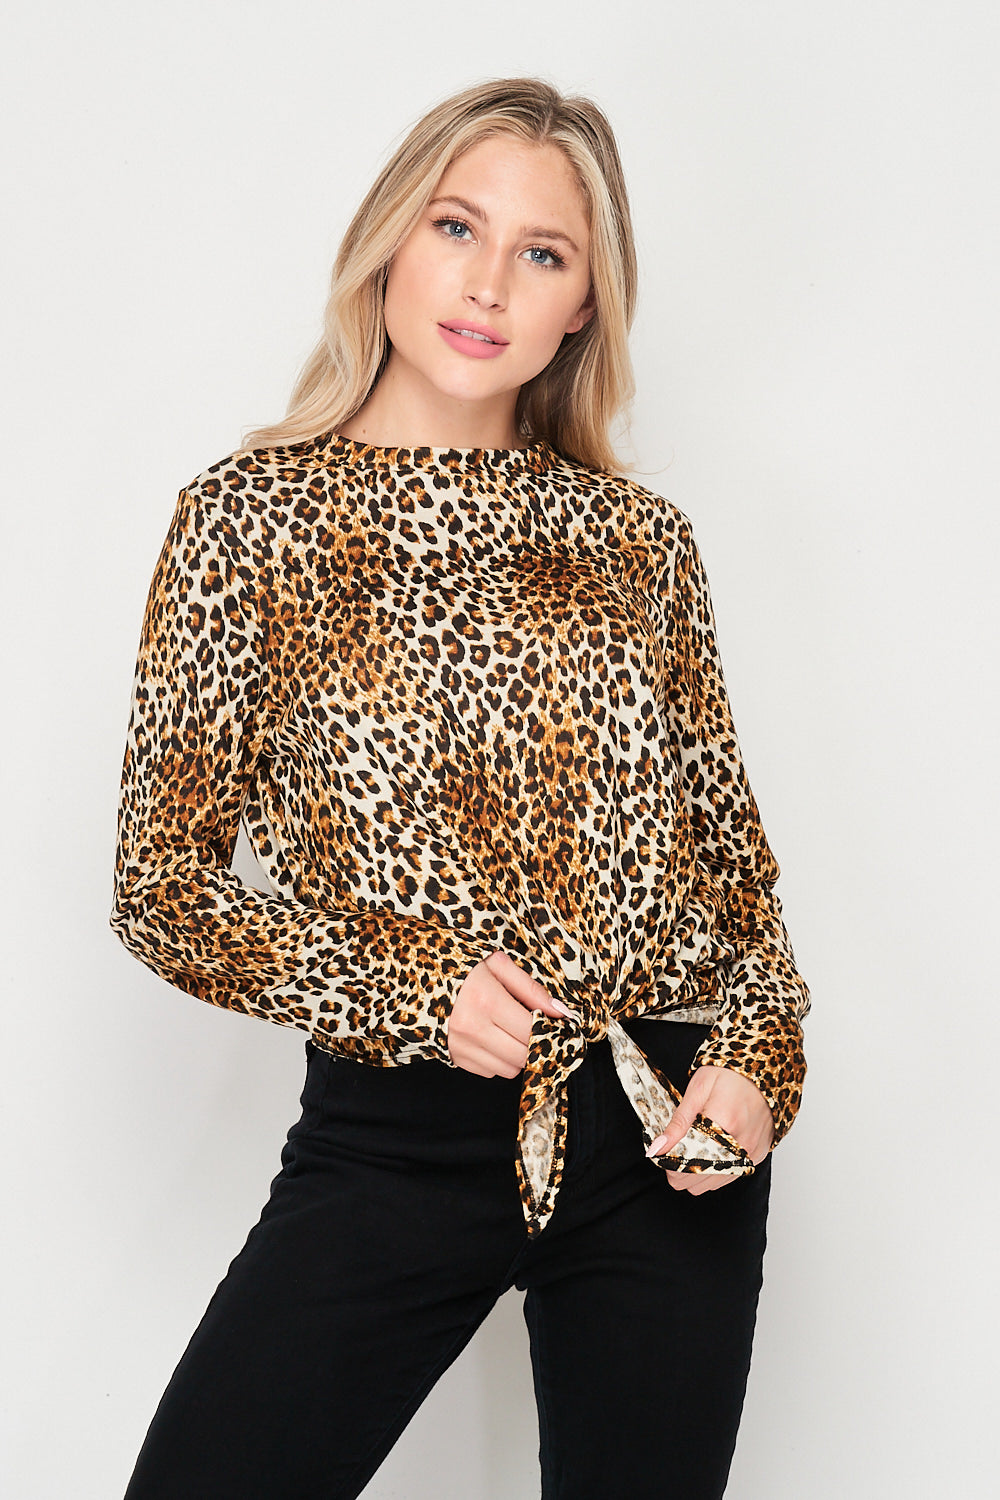 Blank Lewks | Wild Thing Tie Front Animal Print Top | Leopard